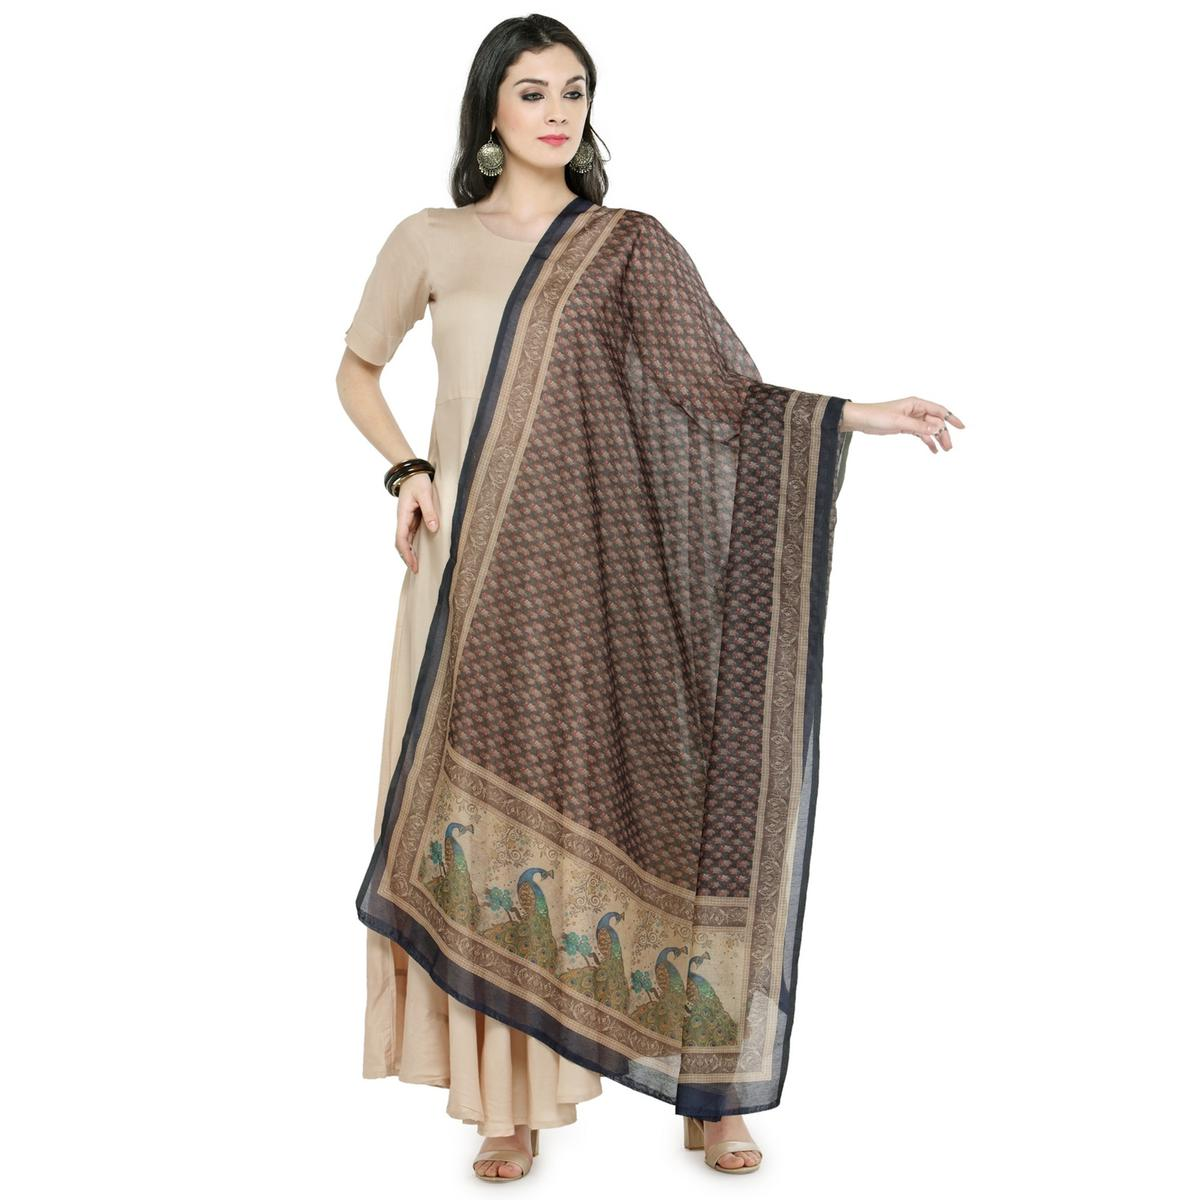 Classy Black Colored Digital Peacock Printed Chanderi Silk Dupatta